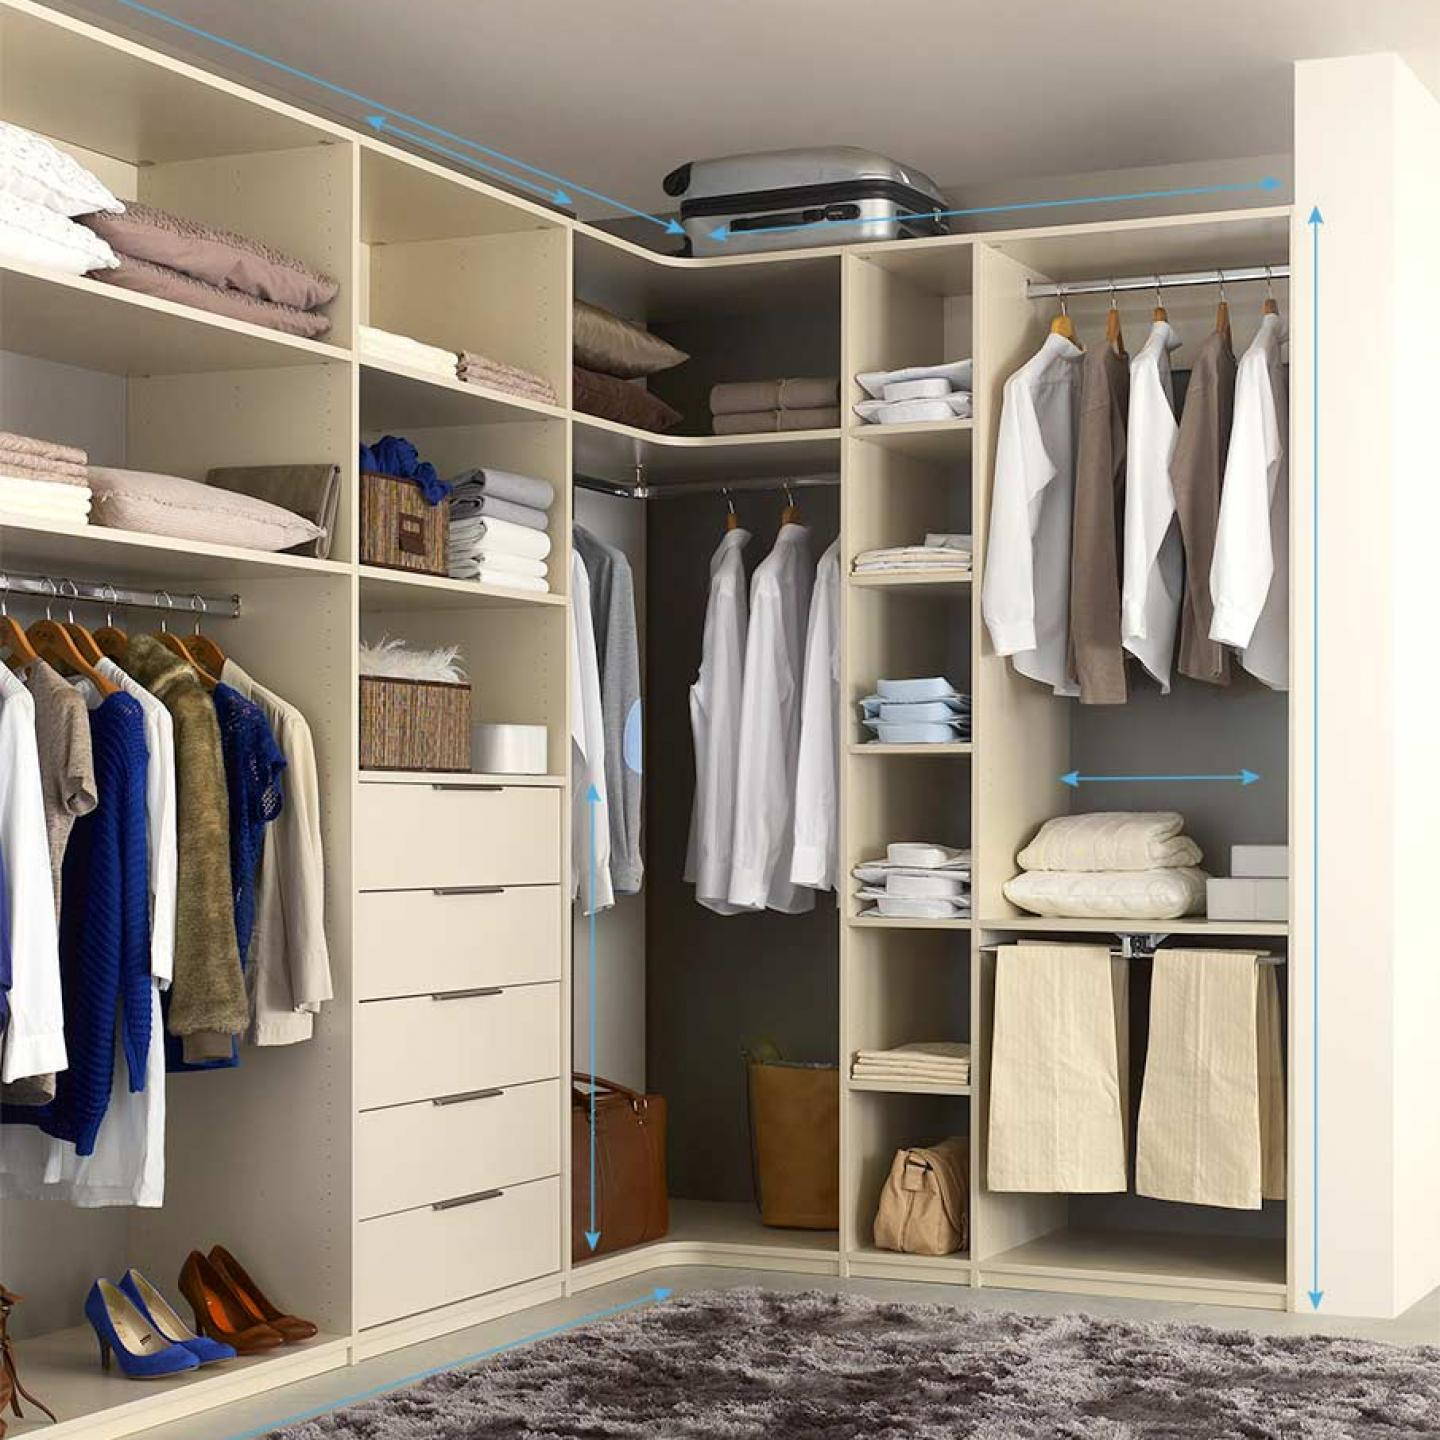 Dressings Armoires Sur Mesure Meubles Celio